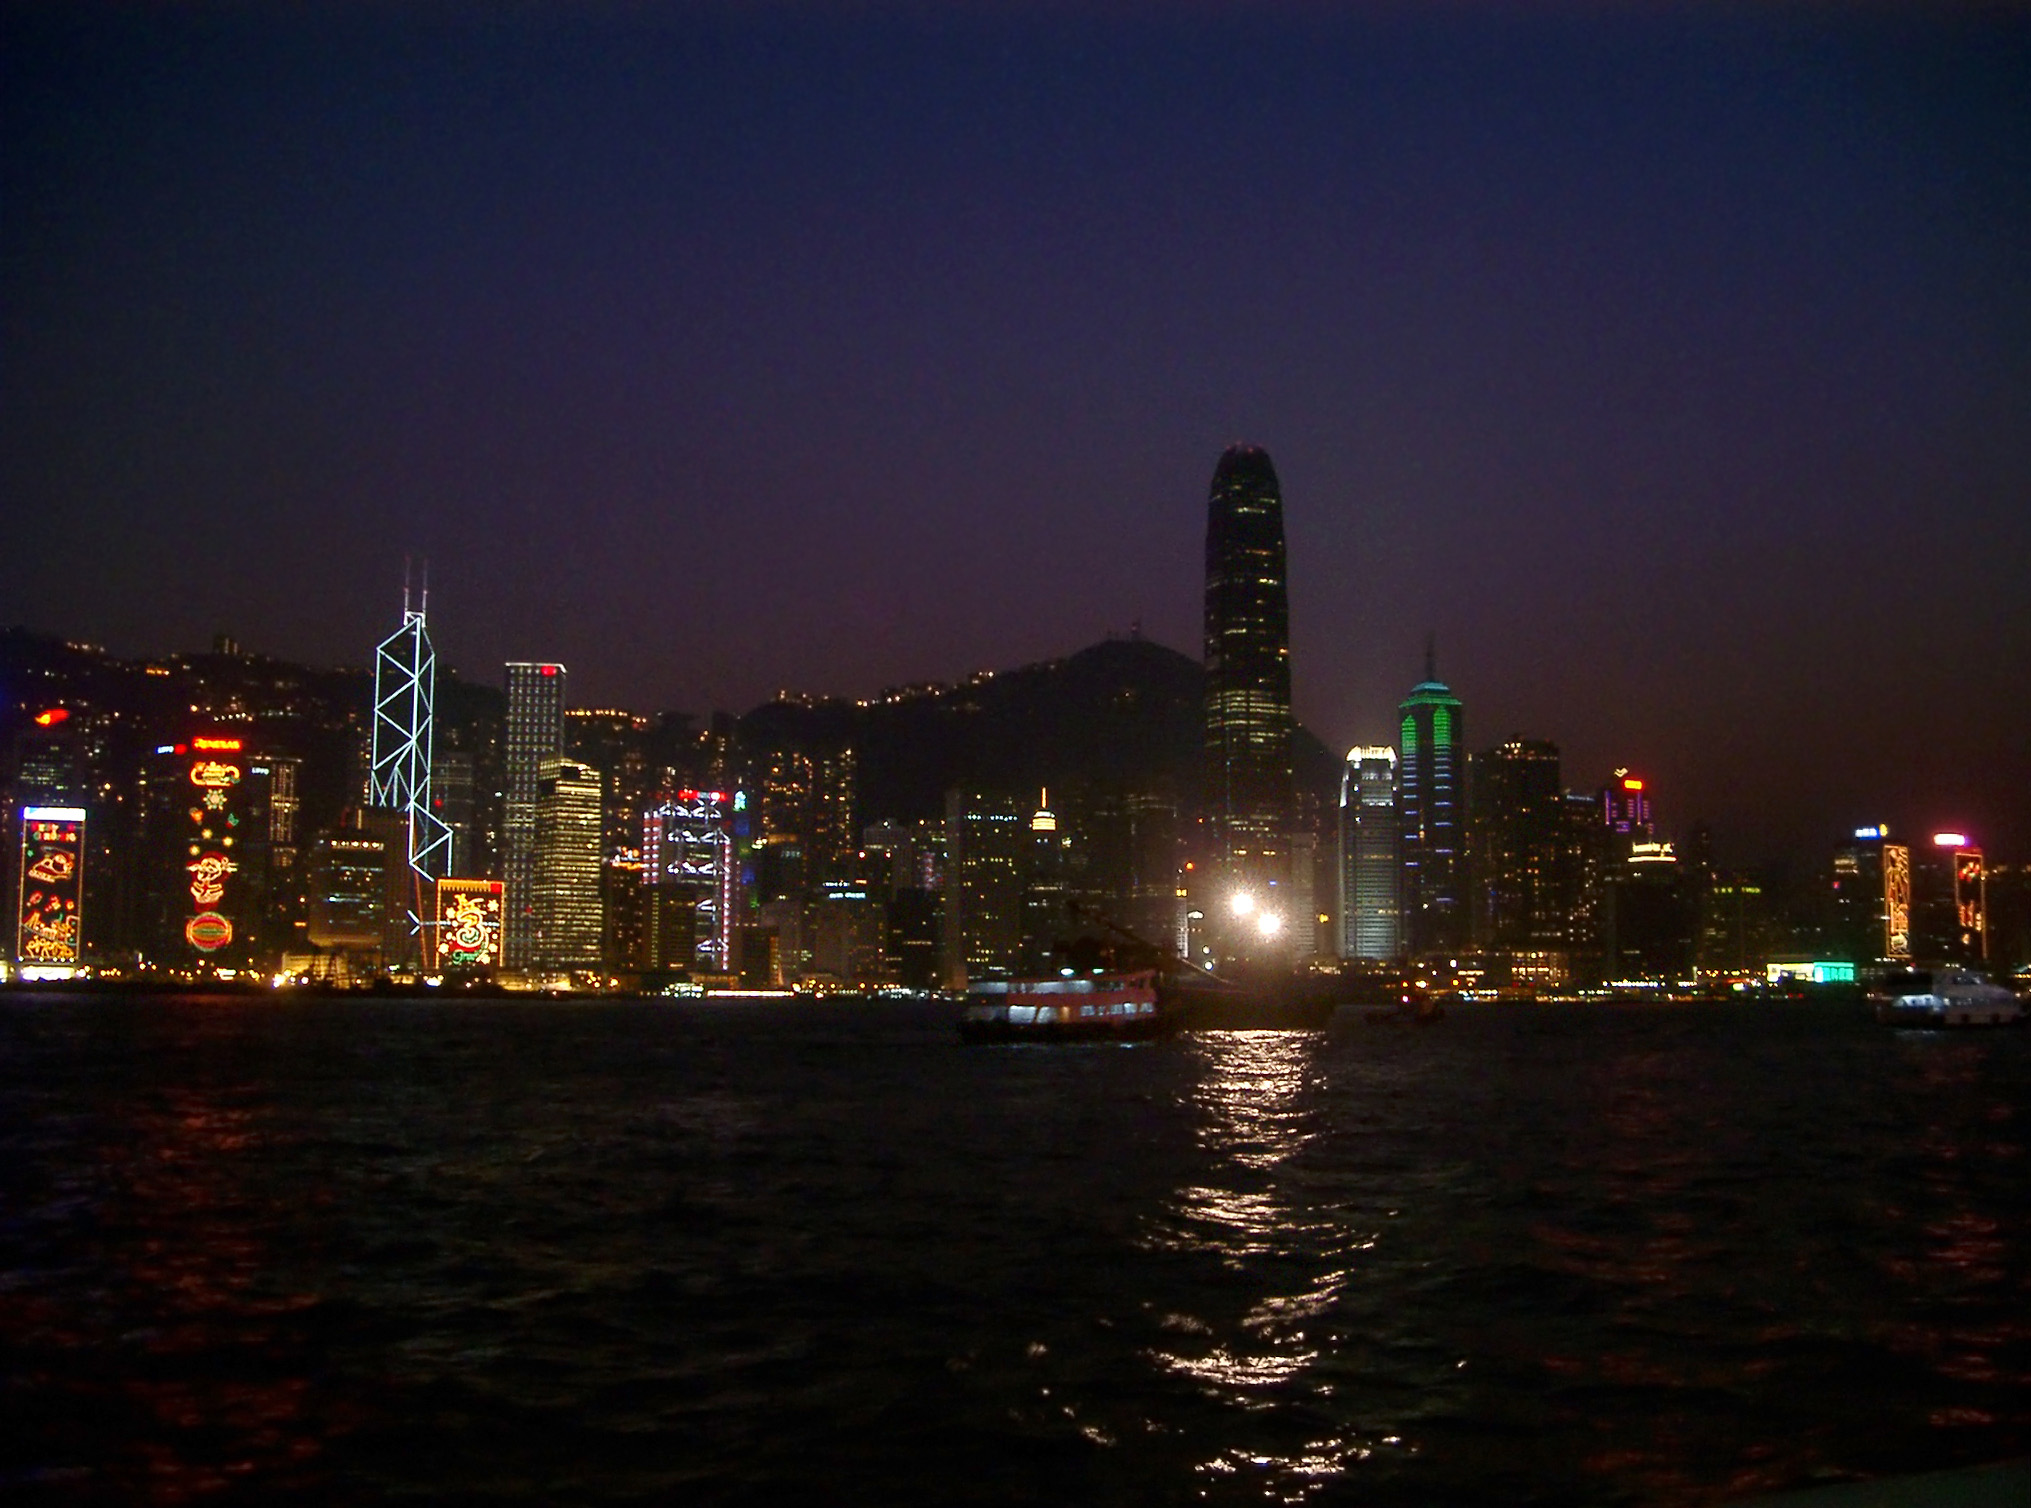 Cityscape of Kong at night with the buildings of the CBD illuminated and casting reflections across the water